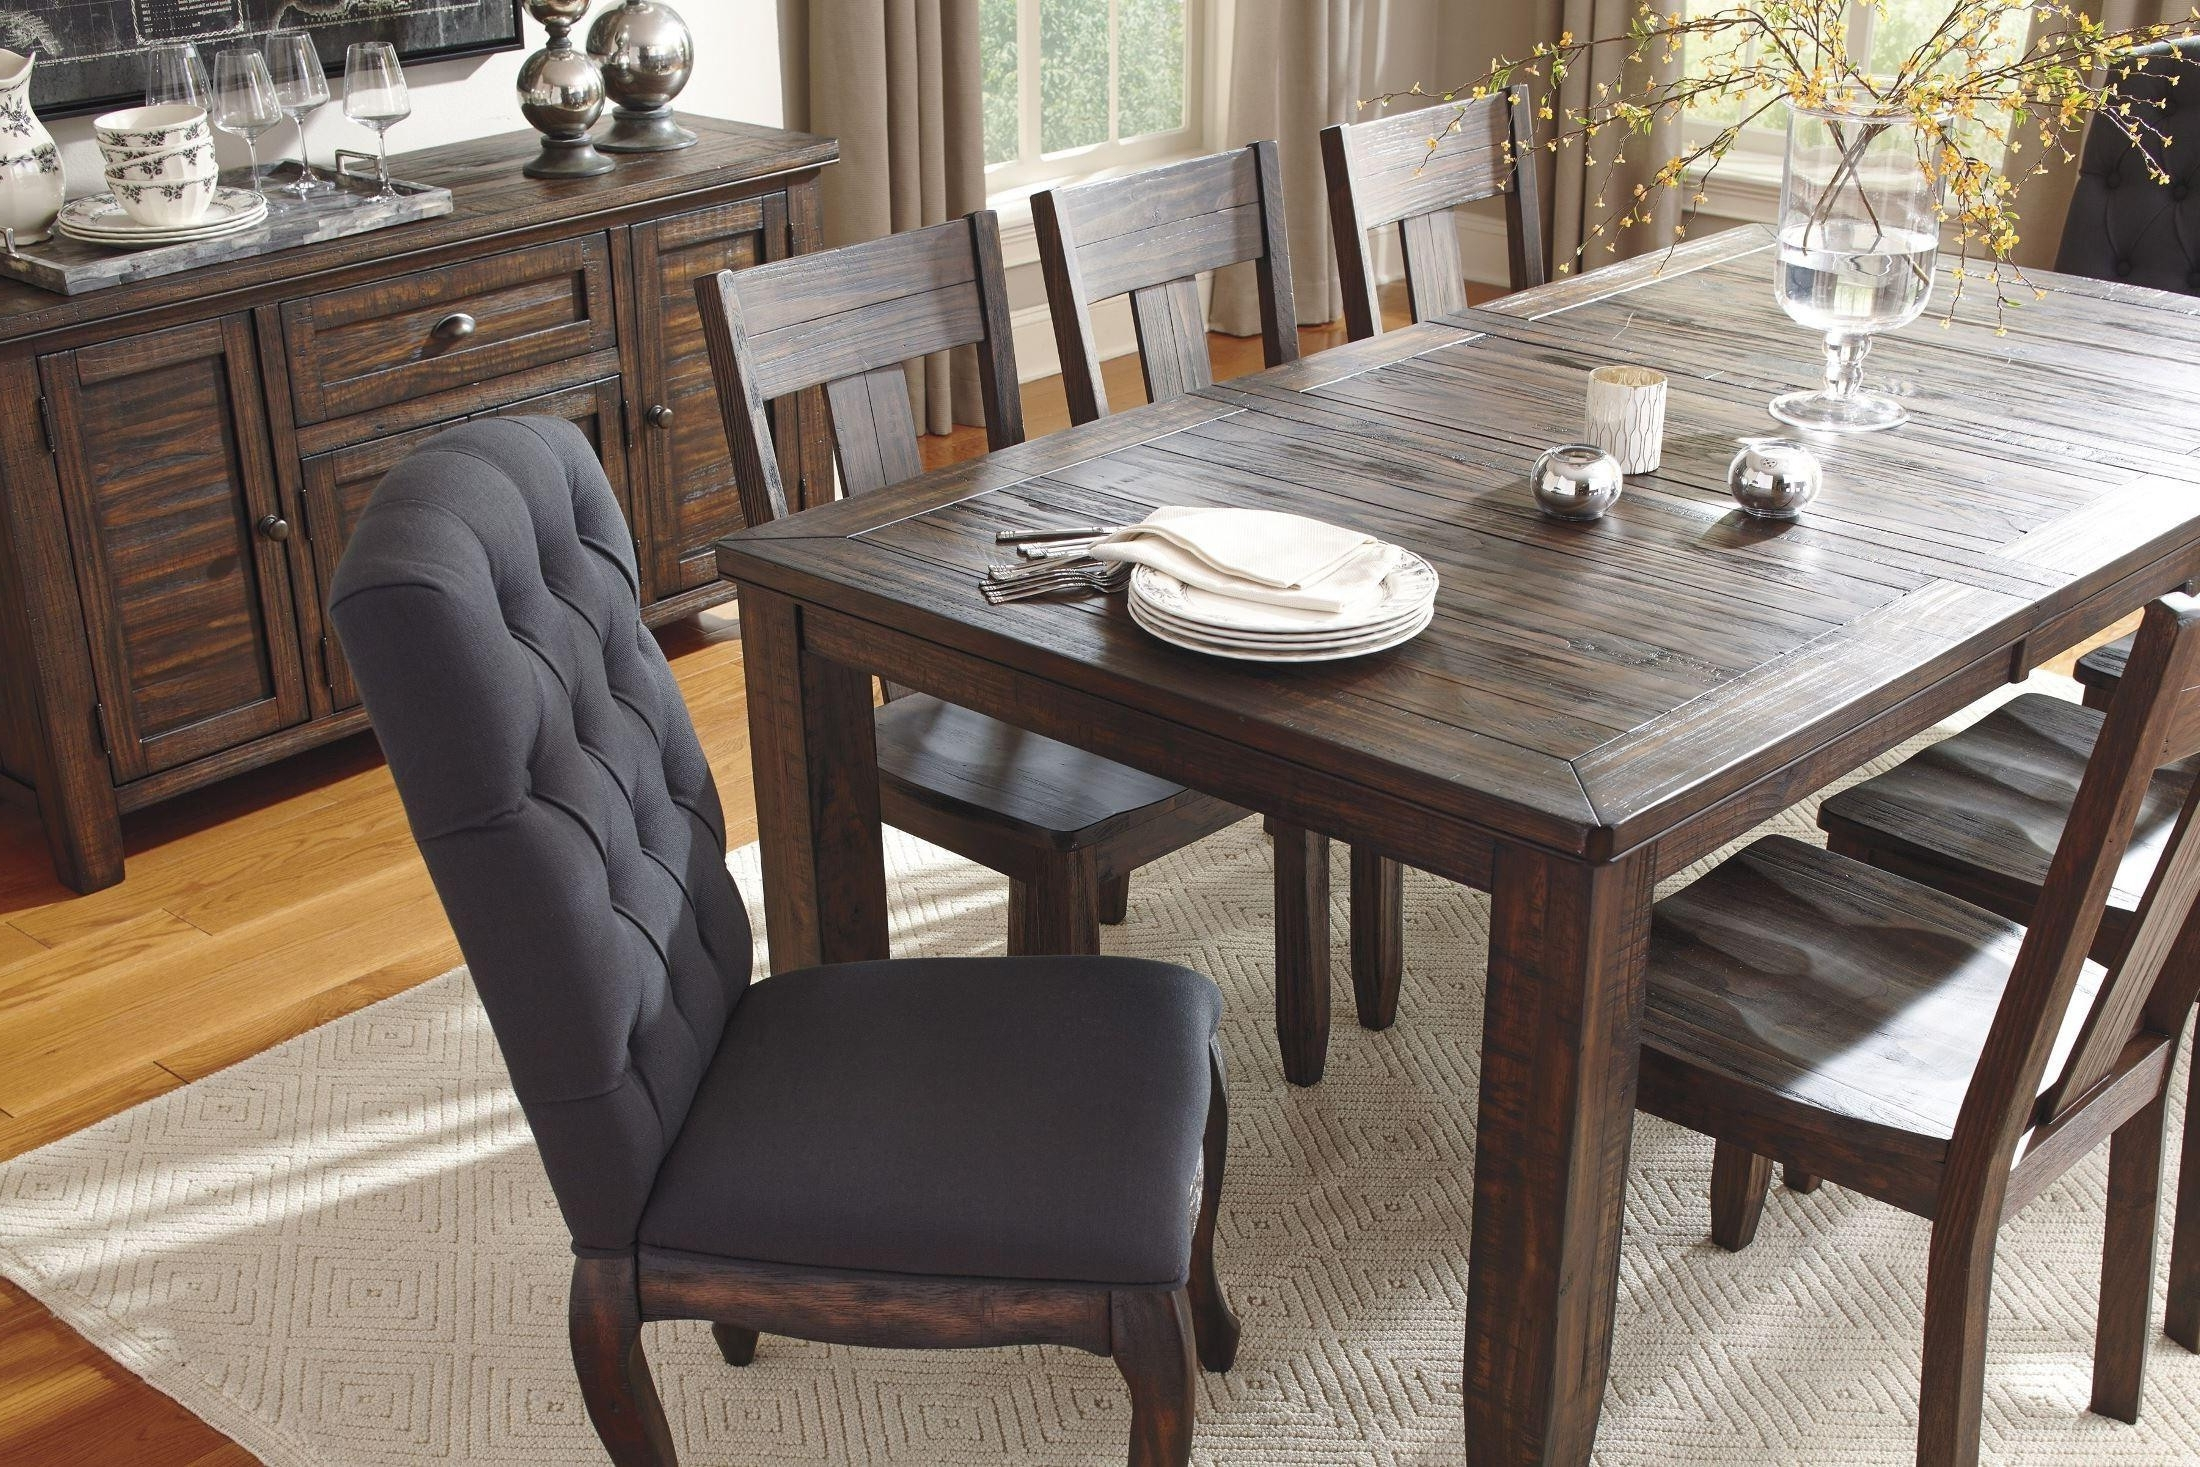 Newest Solid Dark Wood Dining Tables with Dark Wood Dining Room Table And Chairs New Wood Pedestal Base For